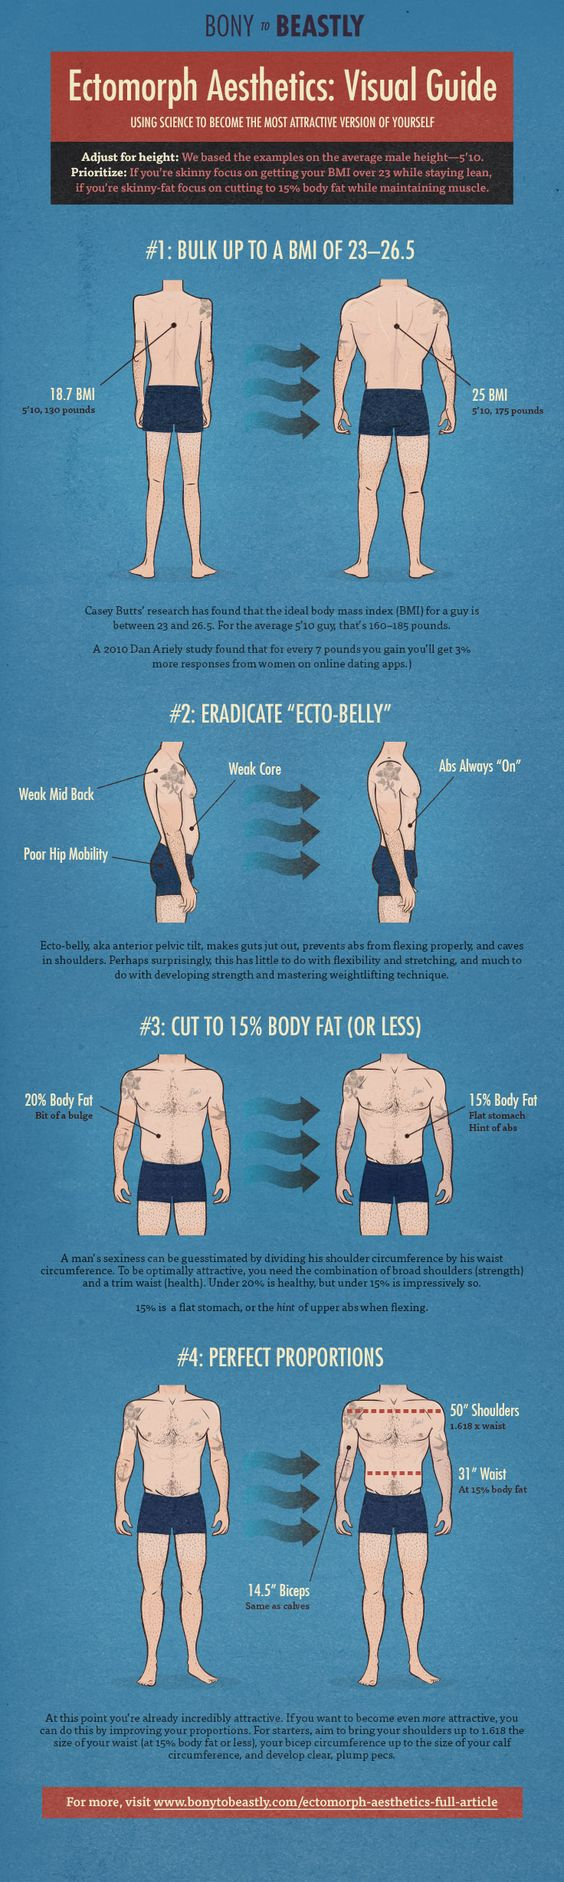 How to Build the Most Attractive Male Physique (Ectomorph Aesthetics)